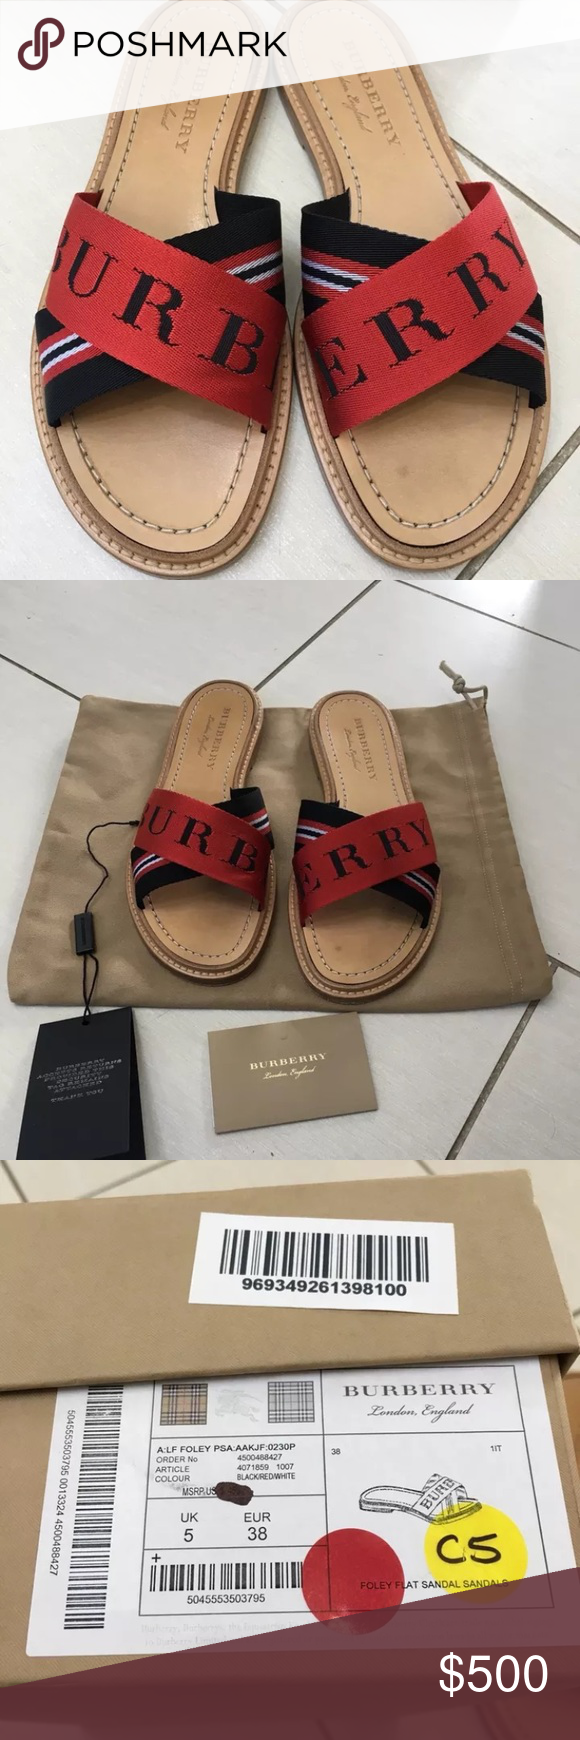 1bcb36113c3 BURBERRY foley nylon leather sandals slides 38 8 Authentic and worn one day  to a friends